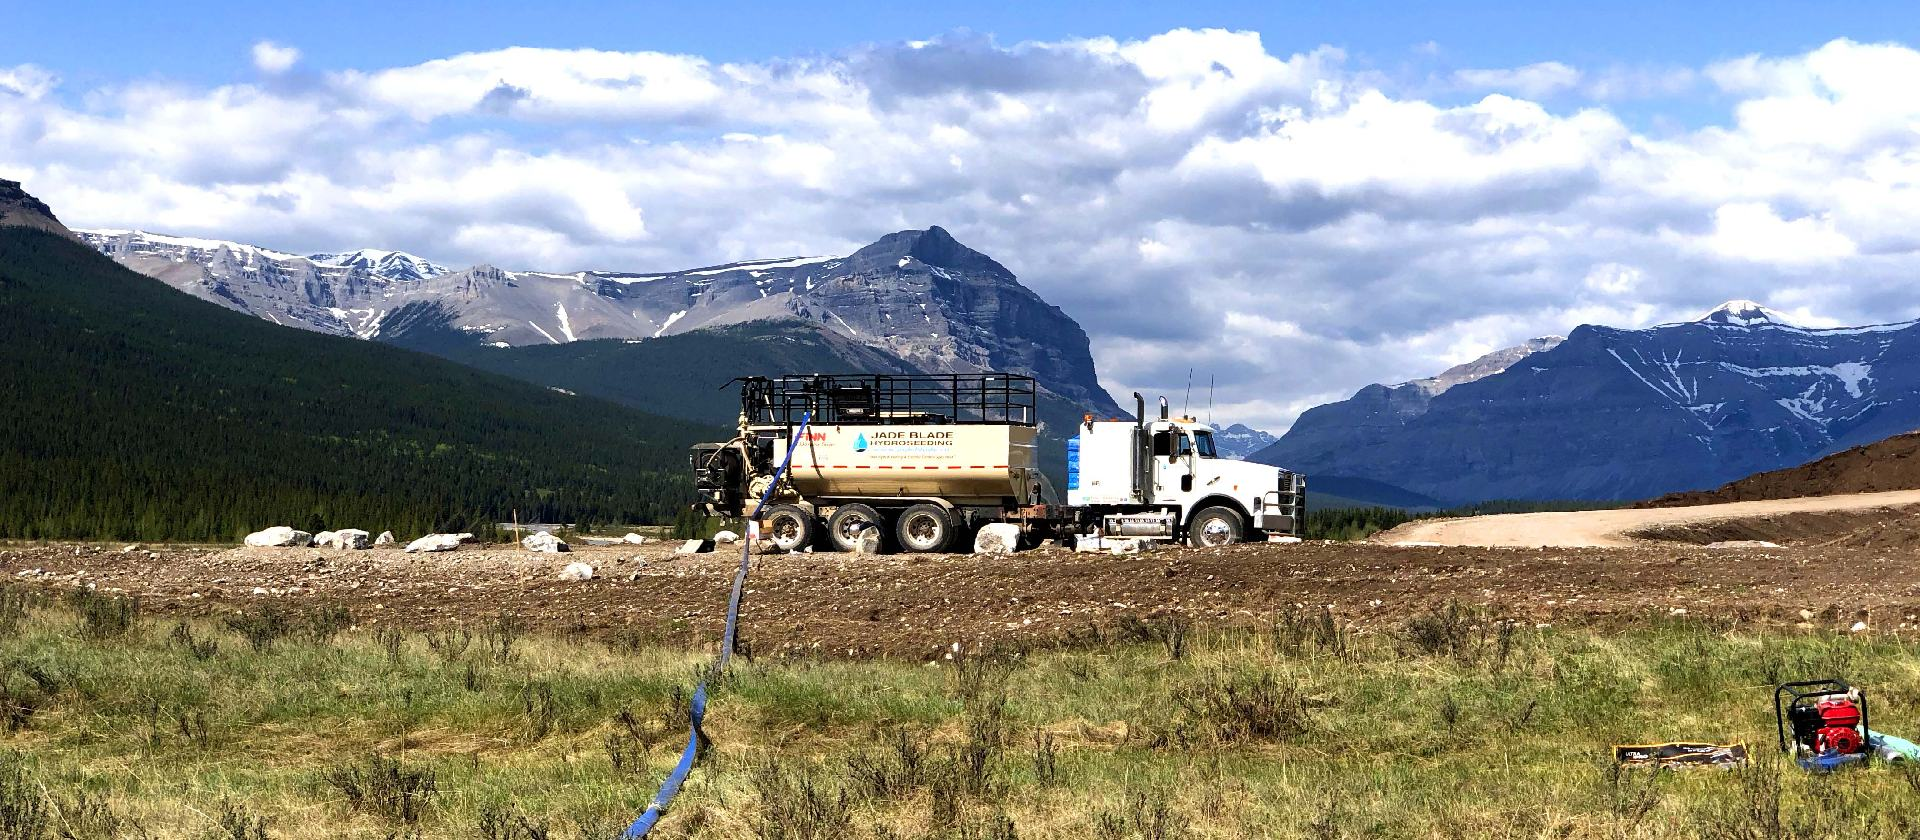 jade blade hydroseeding truck and hose in front of moutains